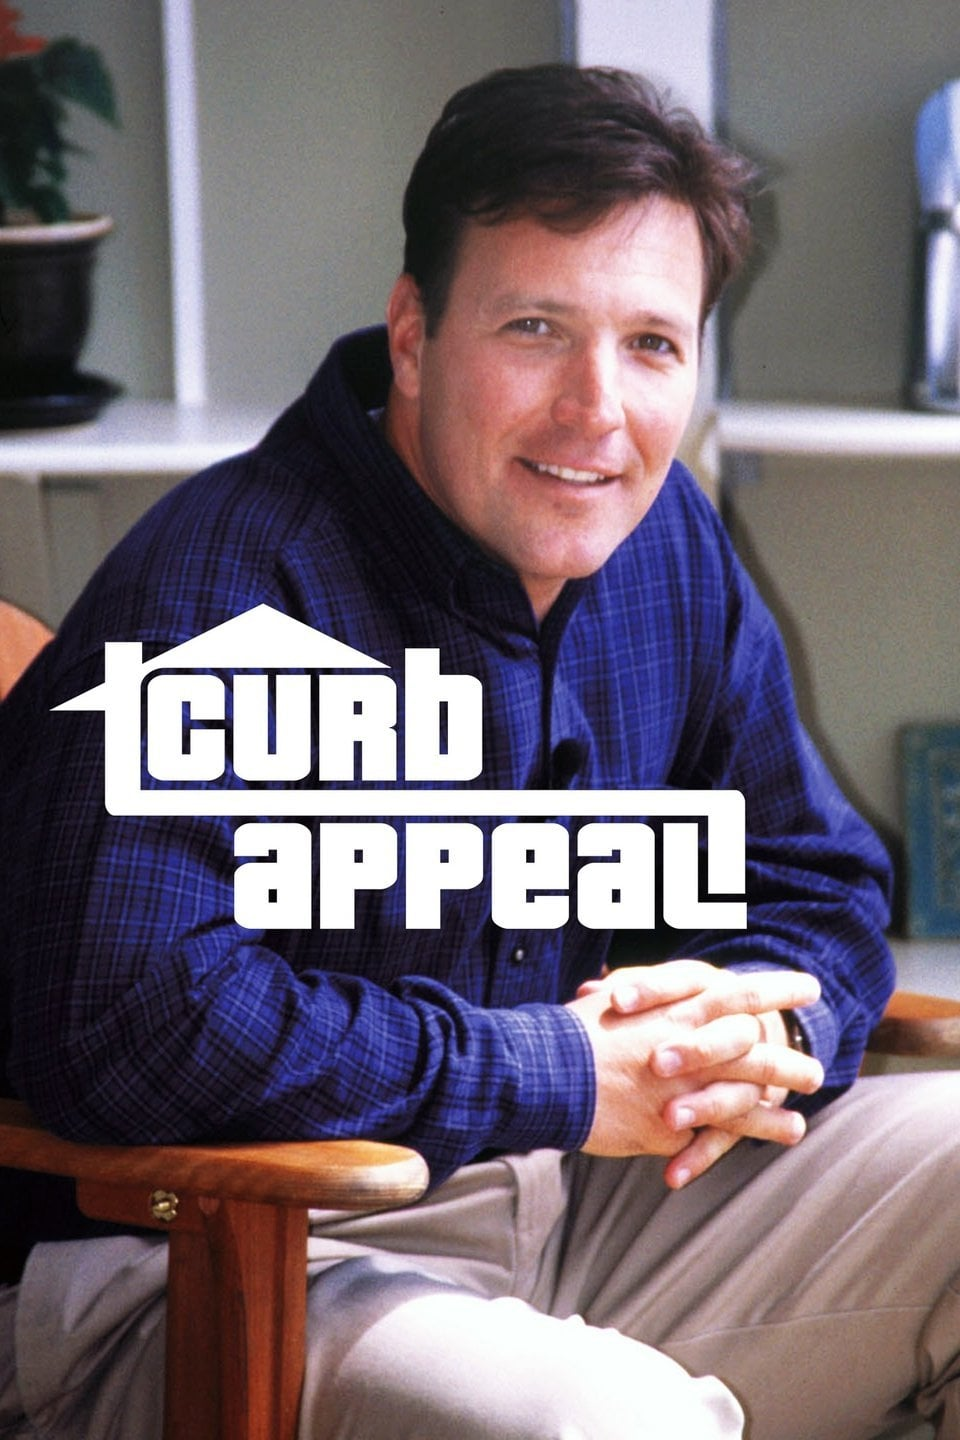 Curb Appeal (1999)